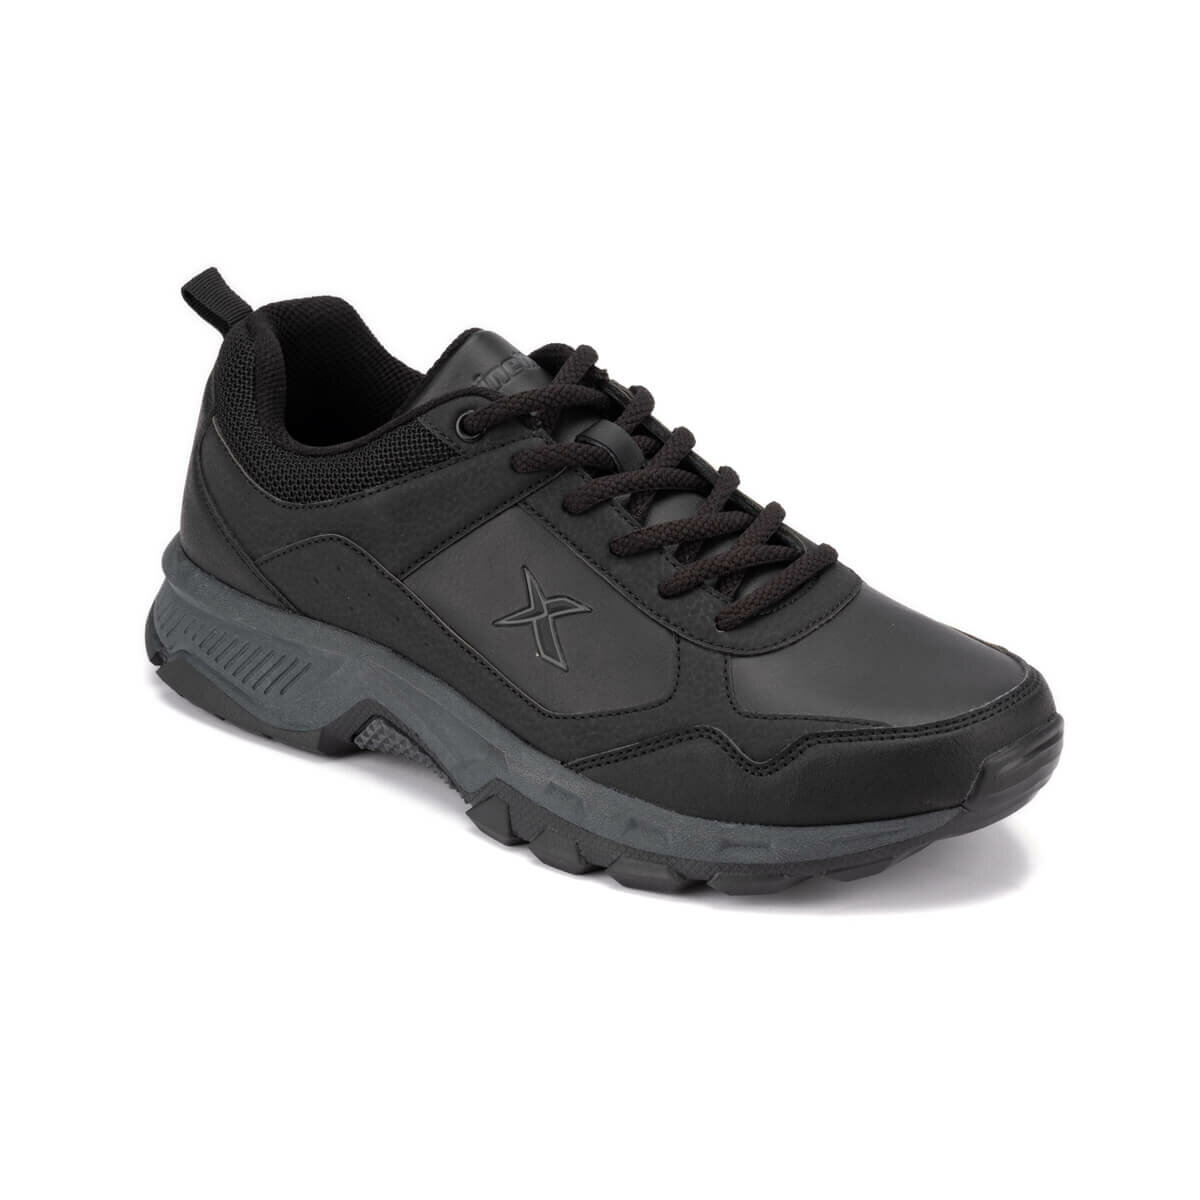 FLO FALKE 9PR Black Men 'S Trekking Shoes KINETIX